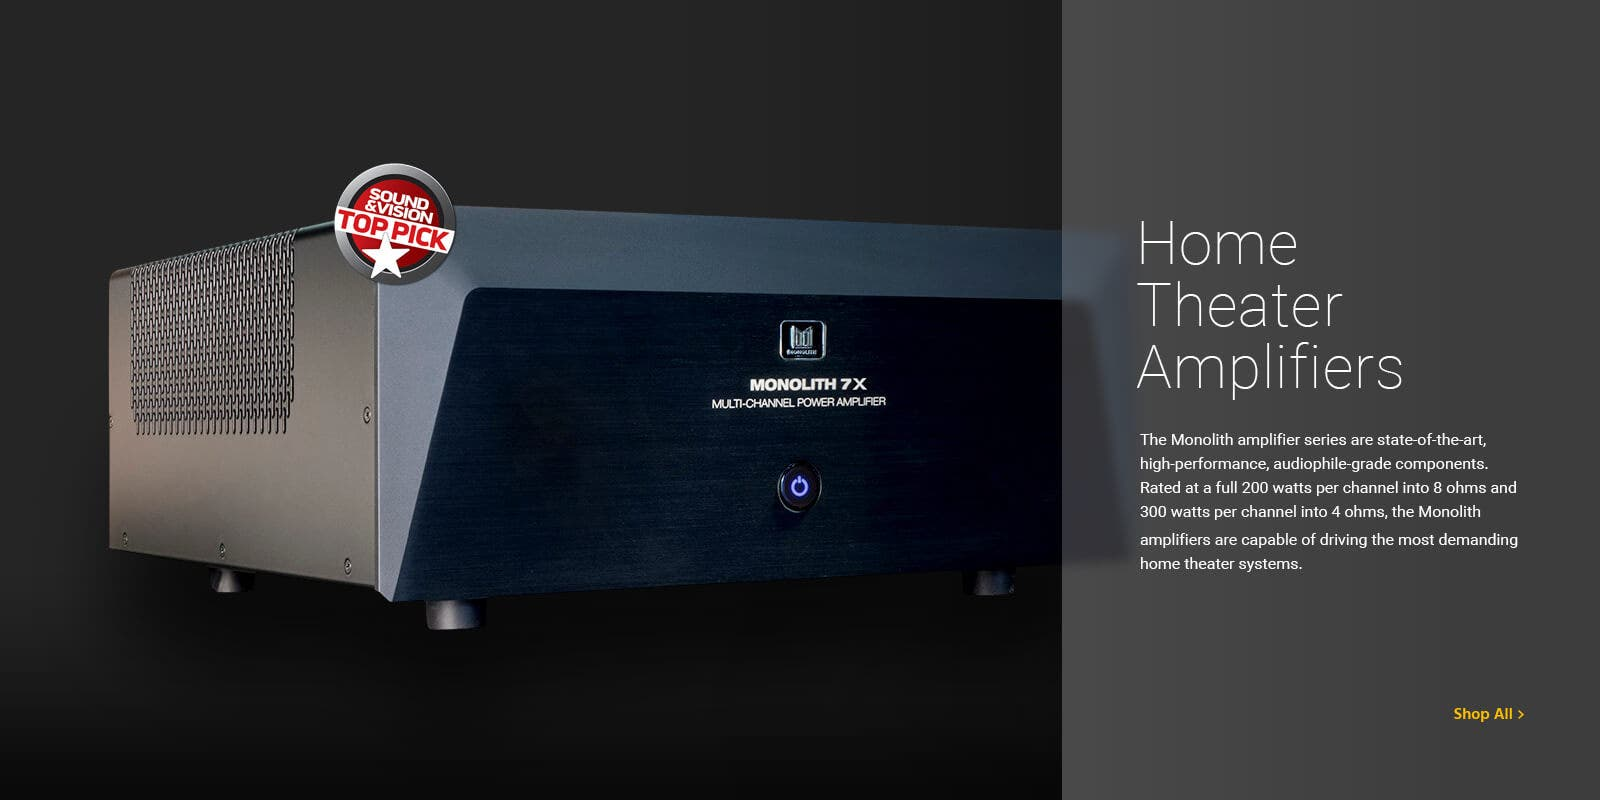 Home Theater Amplifiers, The monolith amplifier series are state-of-the-art, high performance, audiophile-grade components. Reted at a full 200 watts per channel into 8 ohms and 300 watts per channel into 4 ohms, the Monolith amplifiers are capable of driving the most demanding home theater systems. Shop All